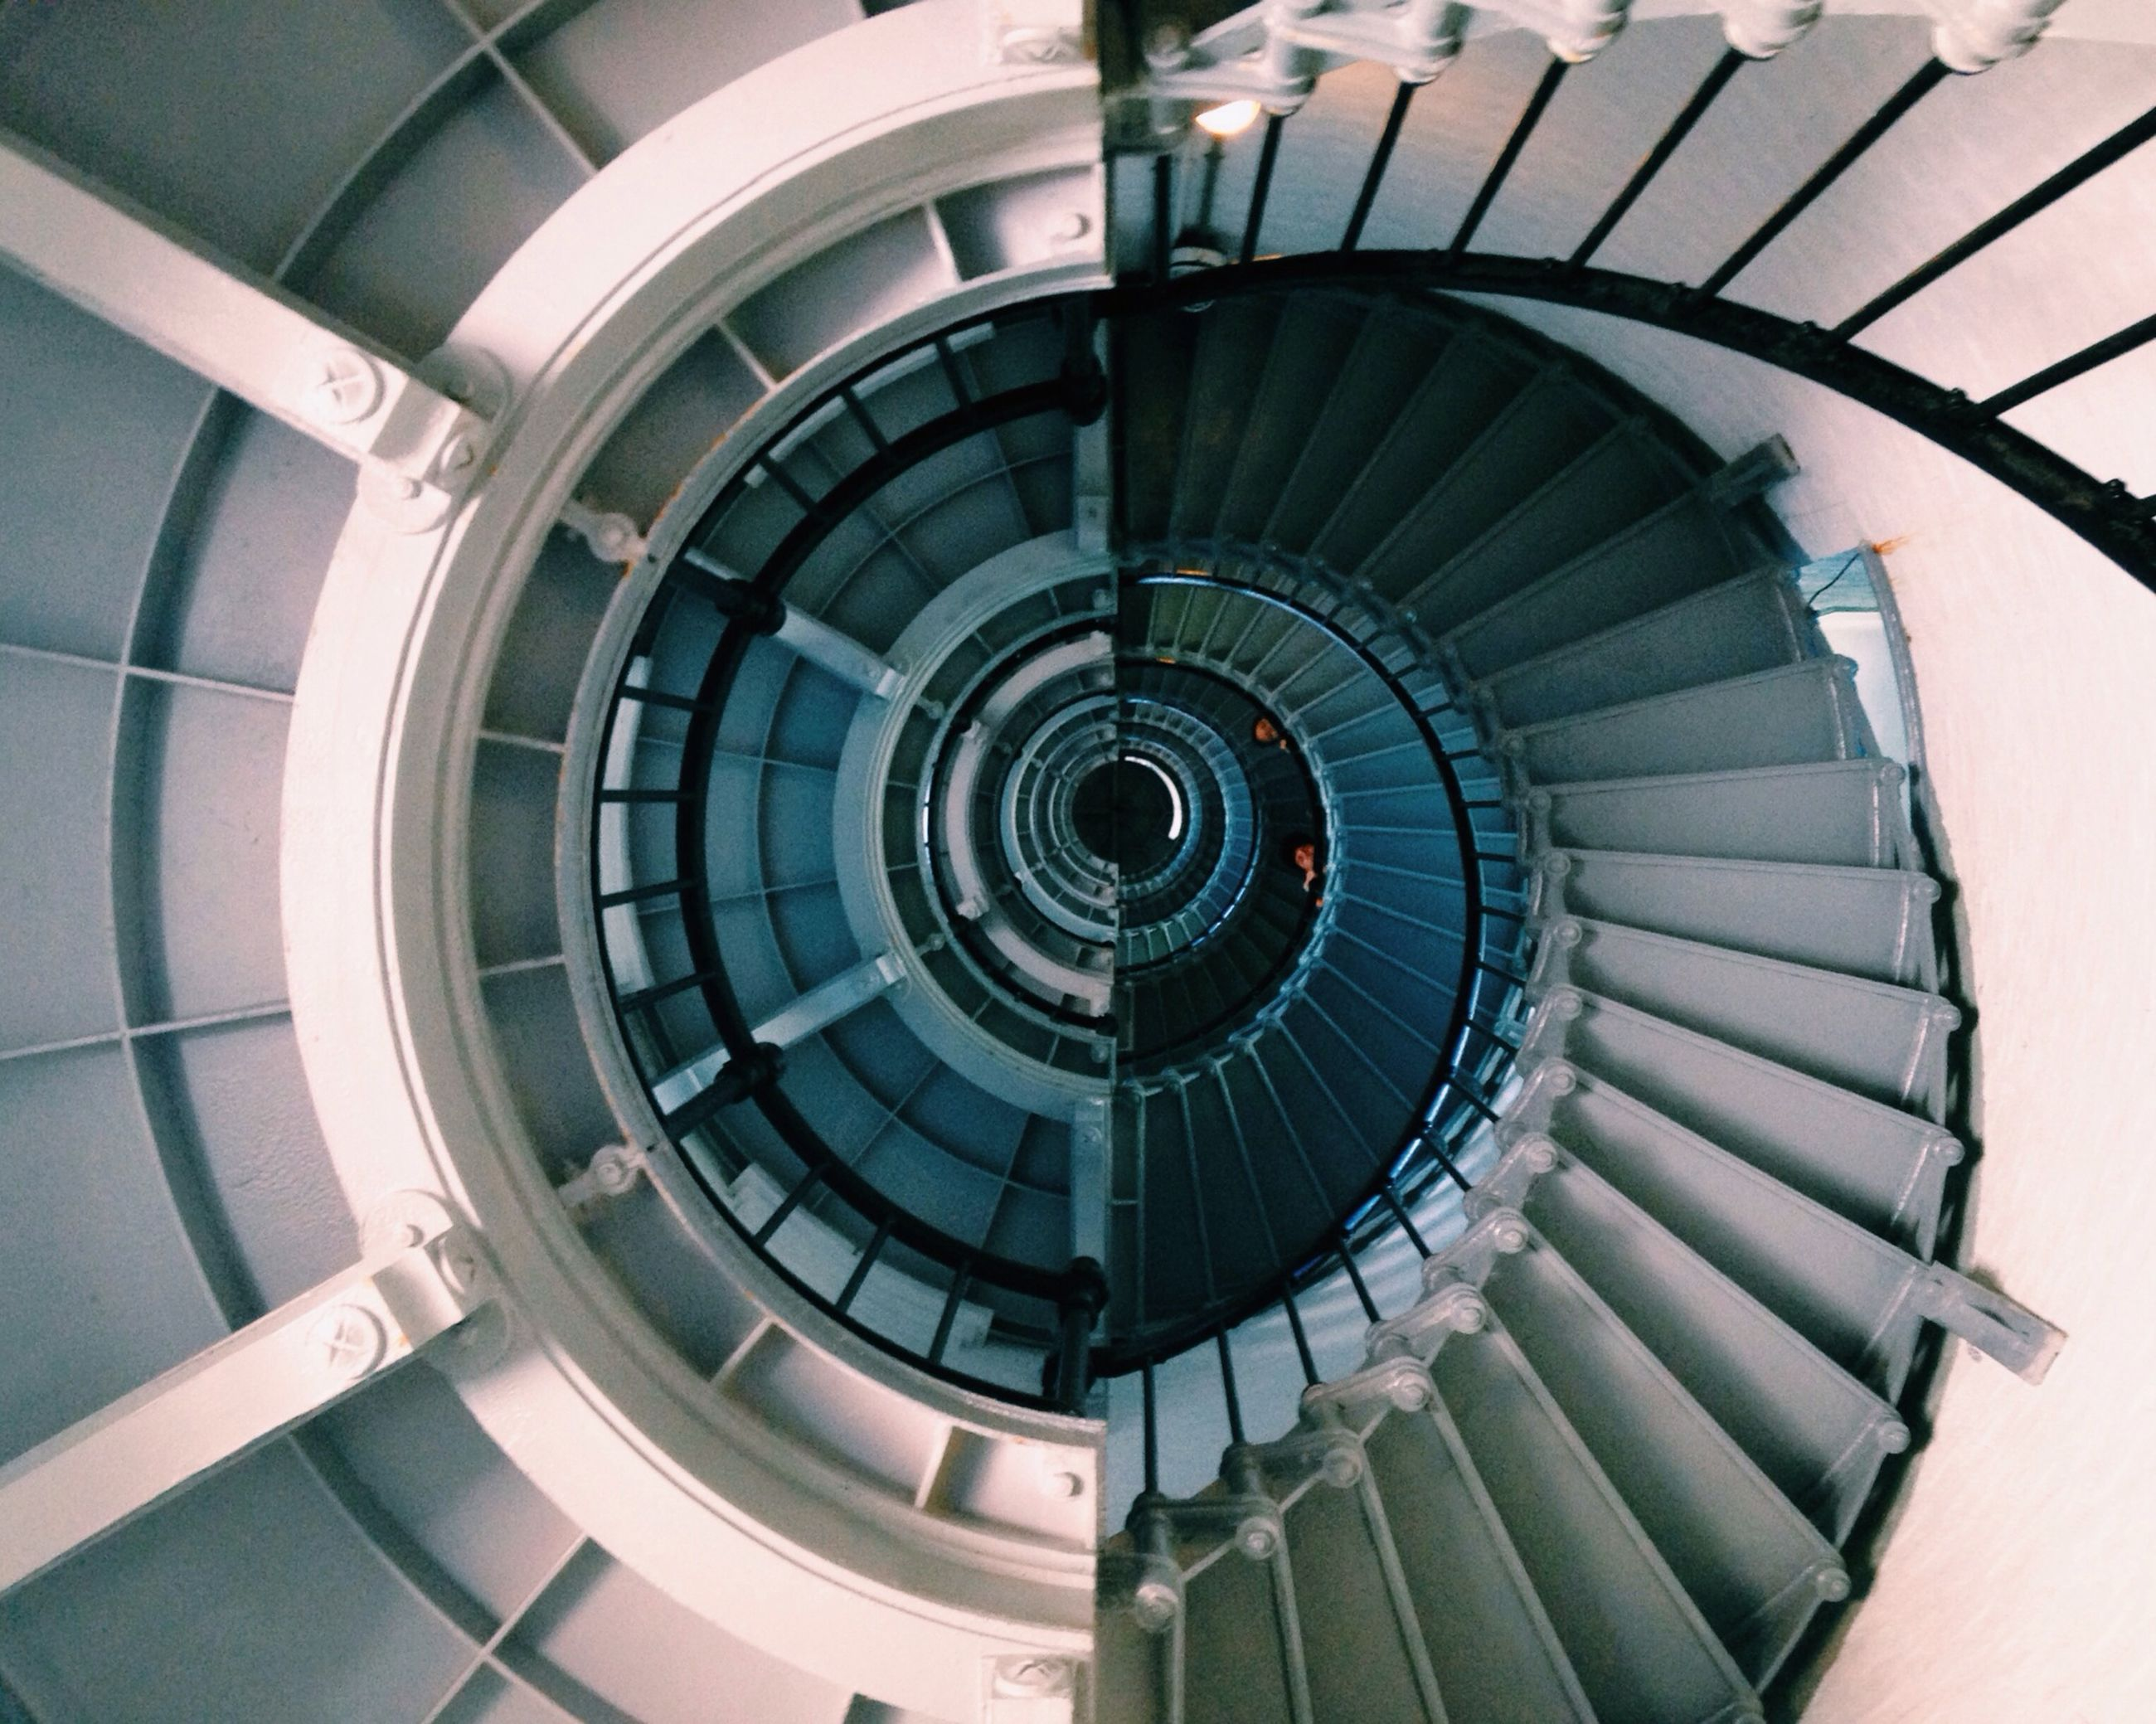 steps and staircases, staircase, spiral staircase, steps, spiral, architecture, built structure, railing, indoors, pattern, modern, directly below, building exterior, circle, building, low angle view, stairs, high angle view, architectural feature, design